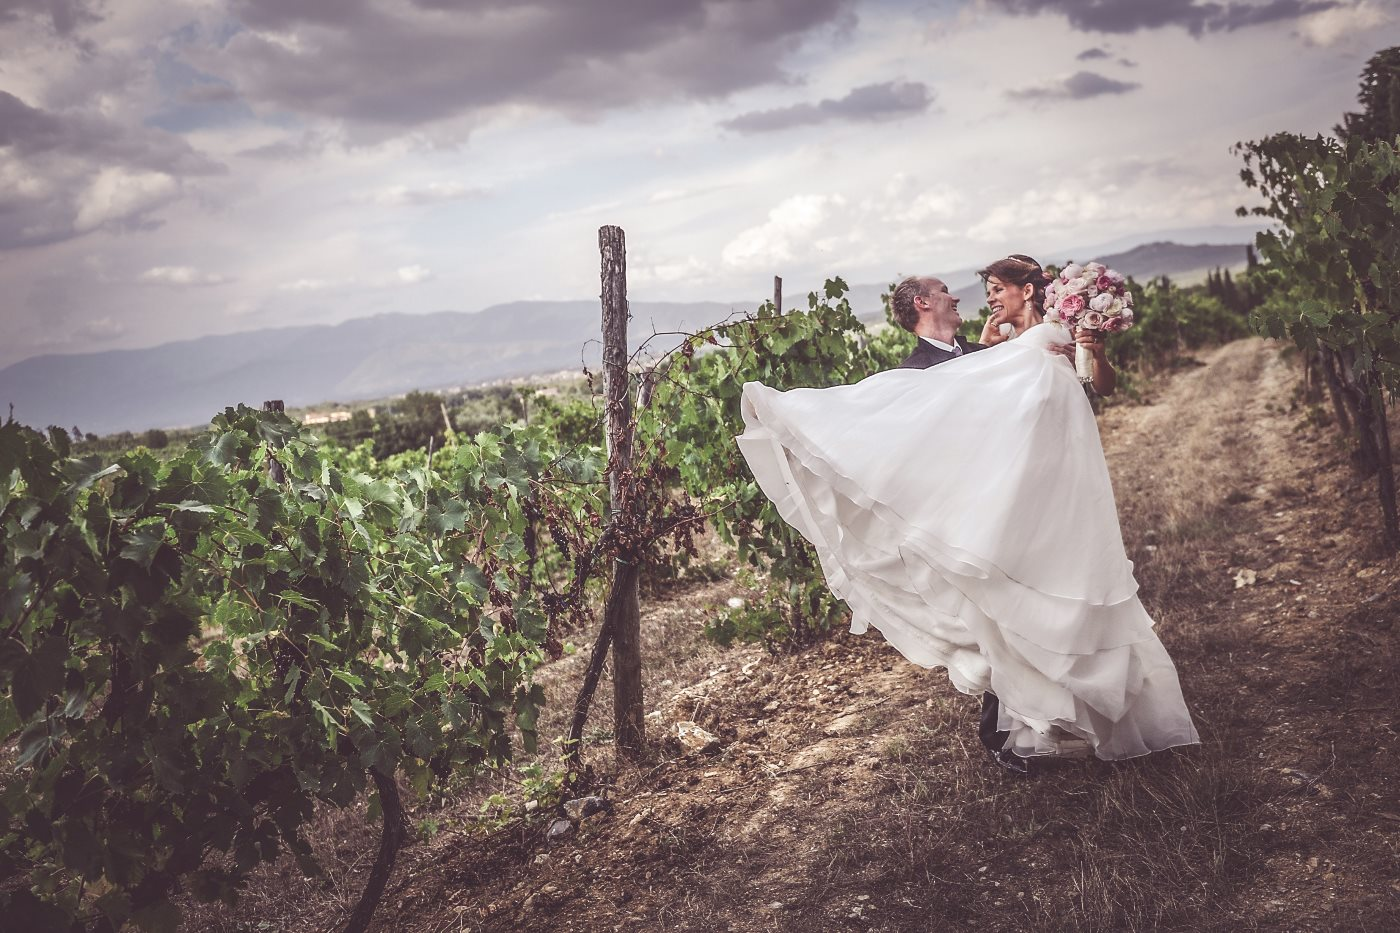 wedding photo tenuta lupinari_14.jpg